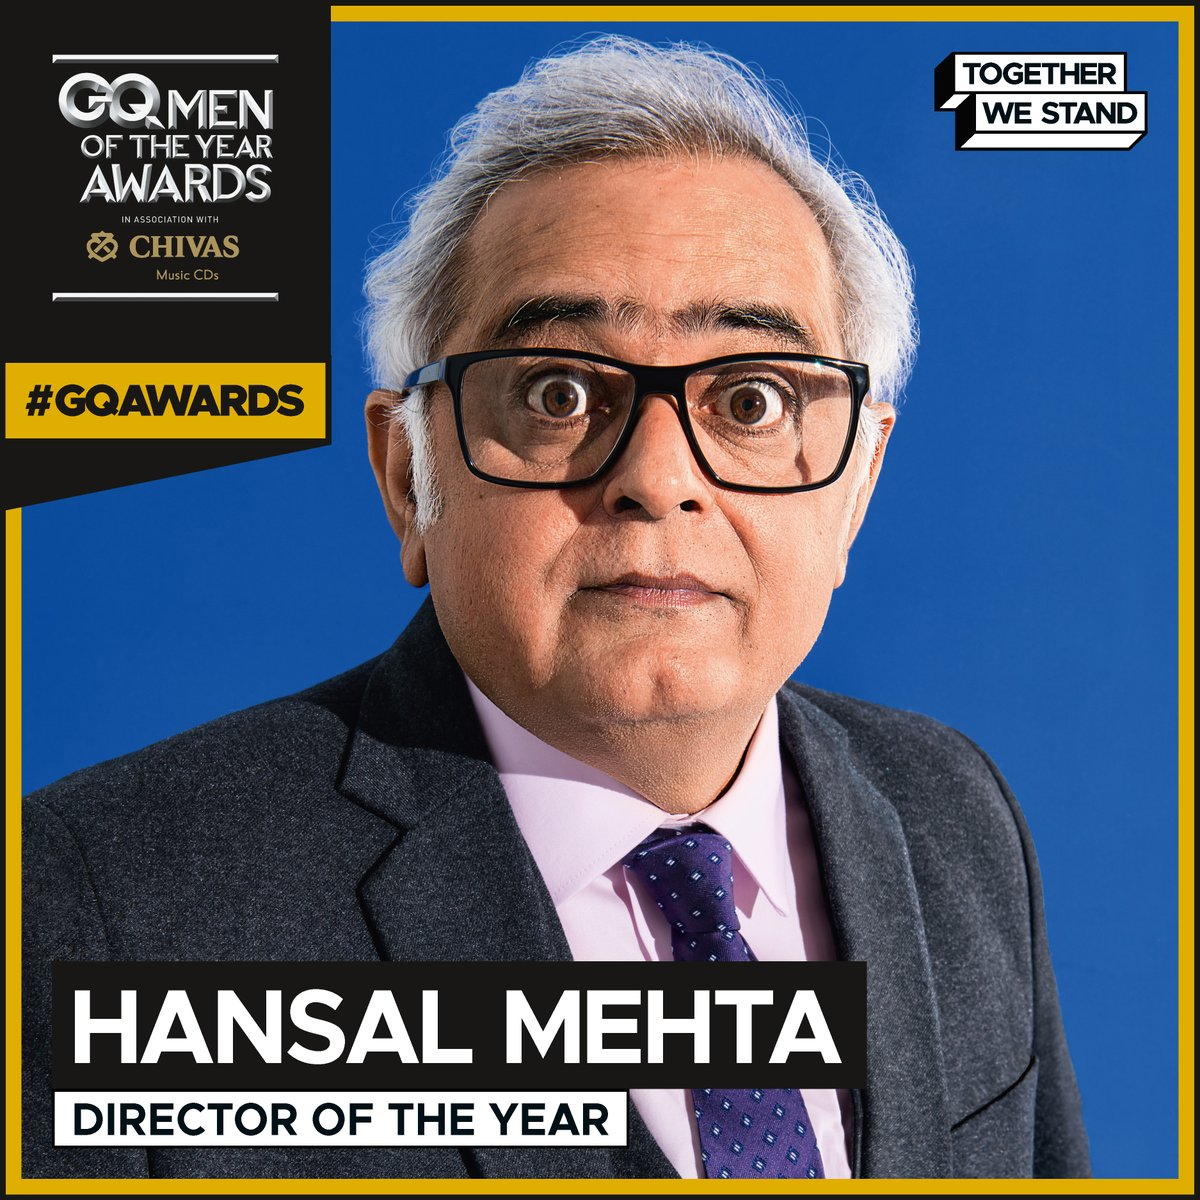 Introducing our 2020 #GQAwards winners: Director of the Year: @mehtahansal  @ChivasIndia #MOTY2020